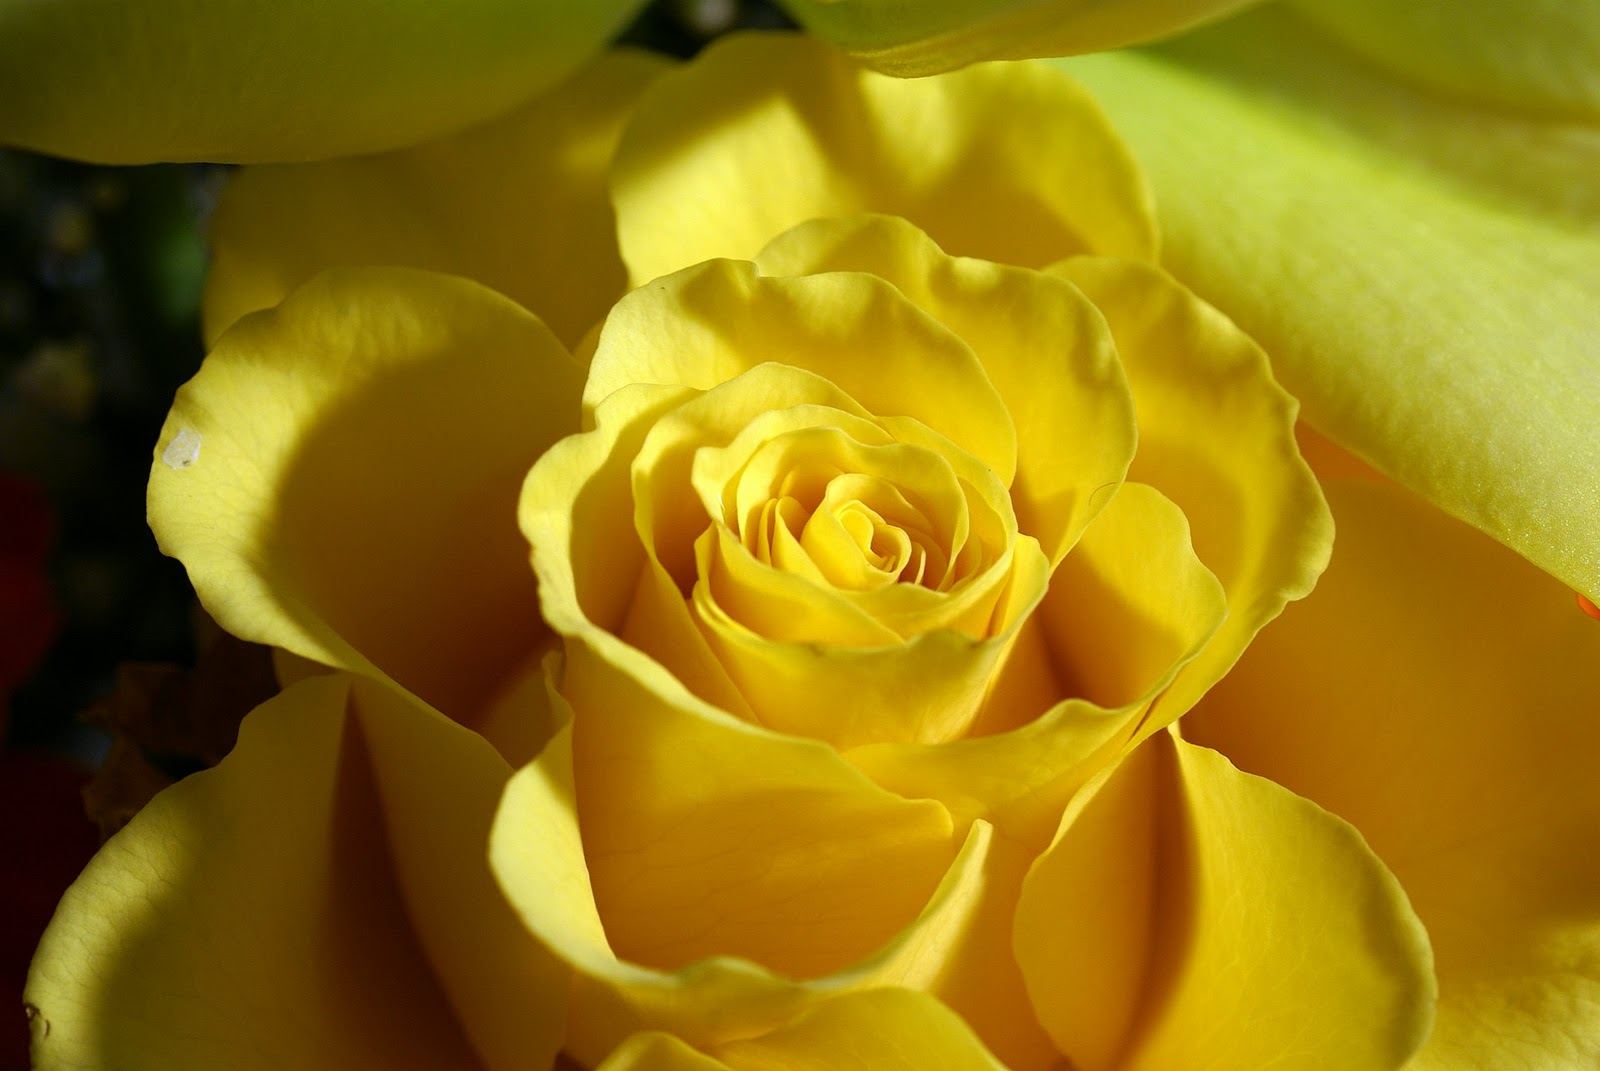 Flower meaning yellow rose 13 cool hd wallpaper hdflowerwallpaper flower meaning yellow rose hd wallpaper mightylinksfo Gallery